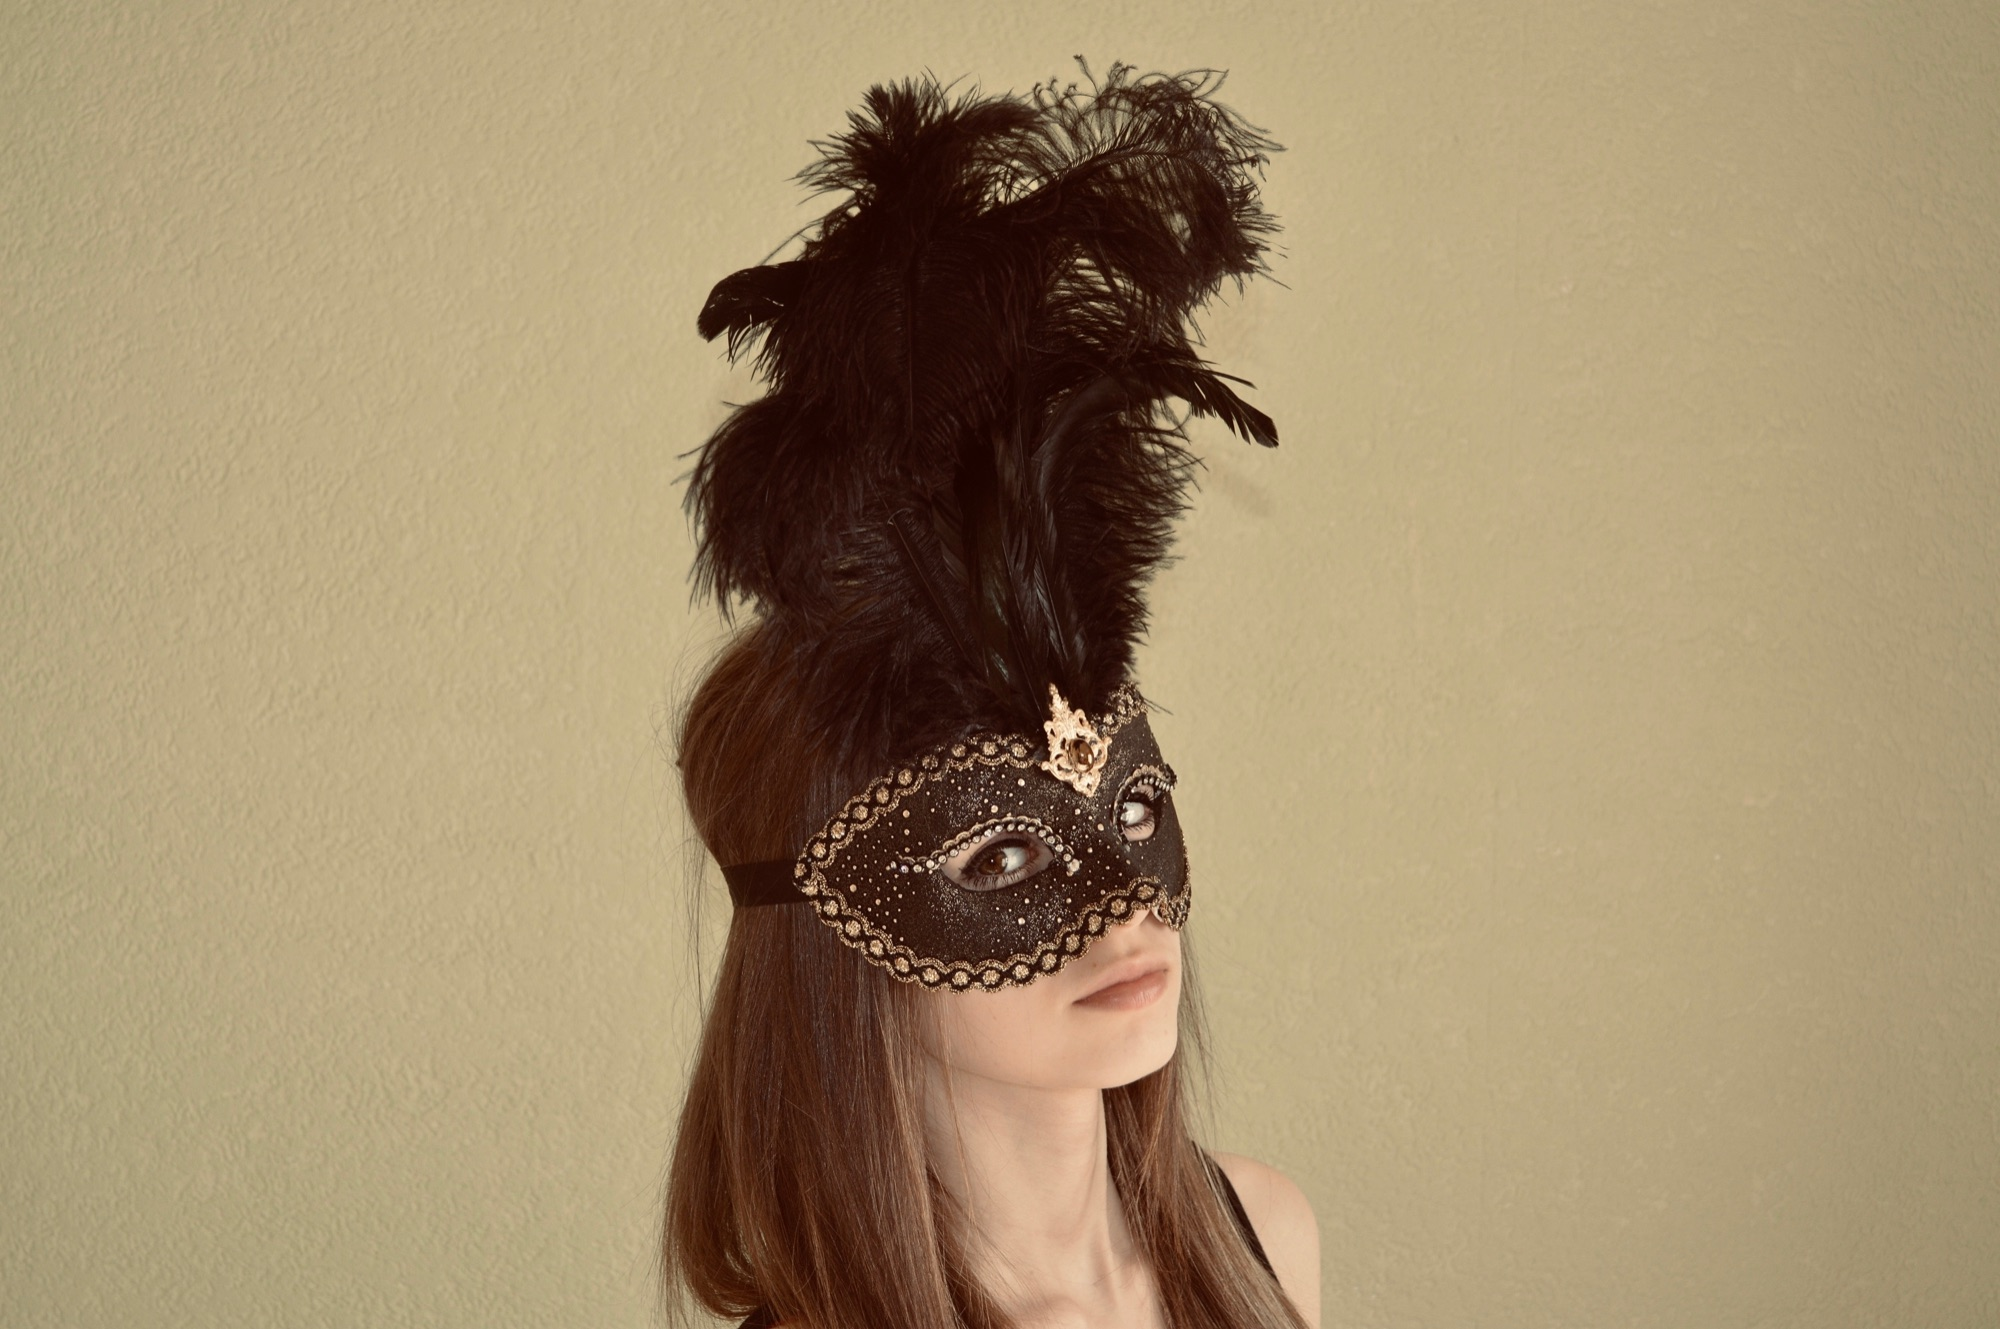 beautiful young girl wearing a black feather mask for her school project and showing what it looks like on